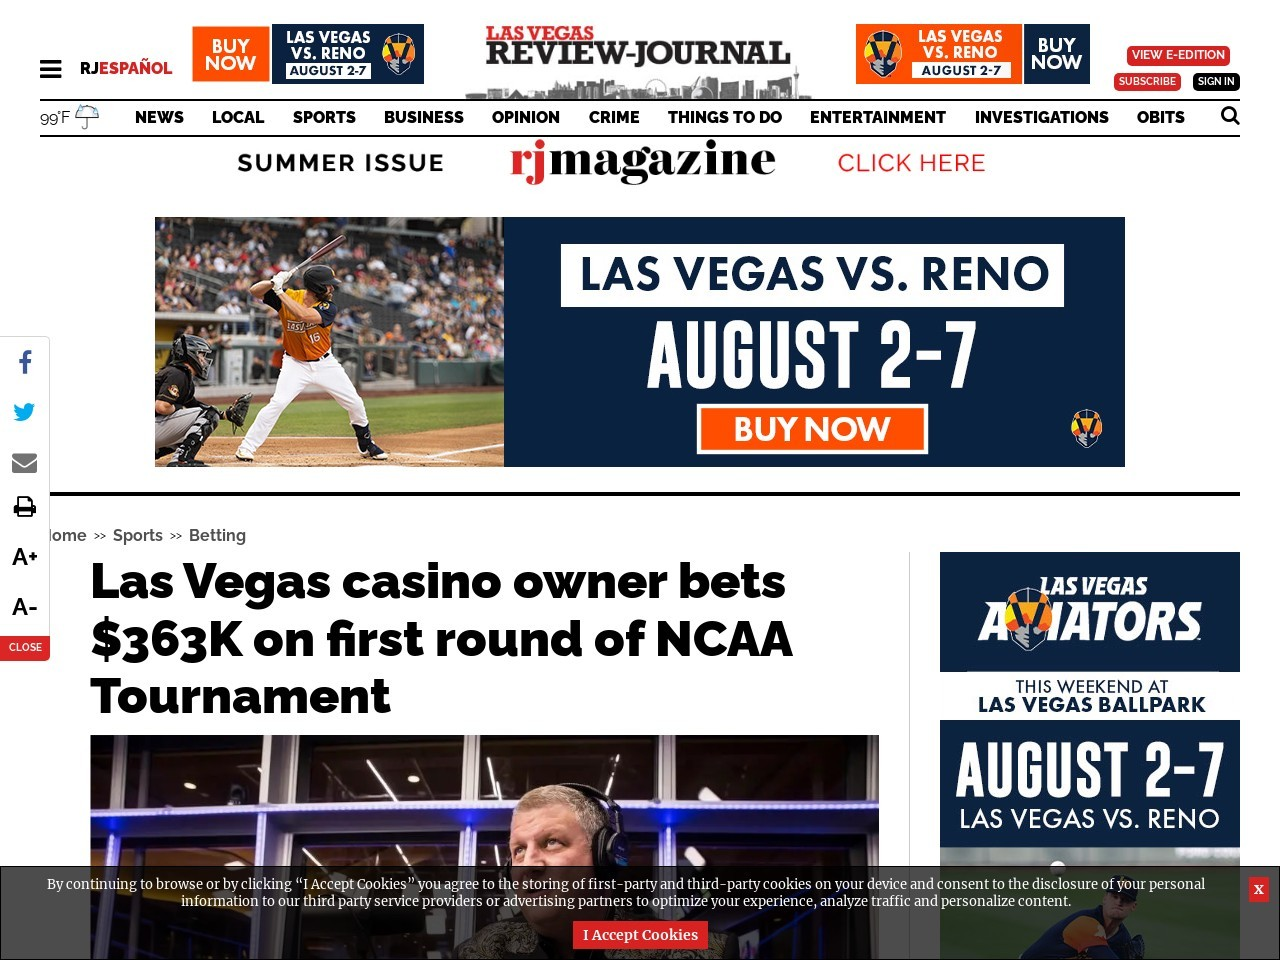 Las Vegas casino owner bets $363K on first round of NCAA Tournament